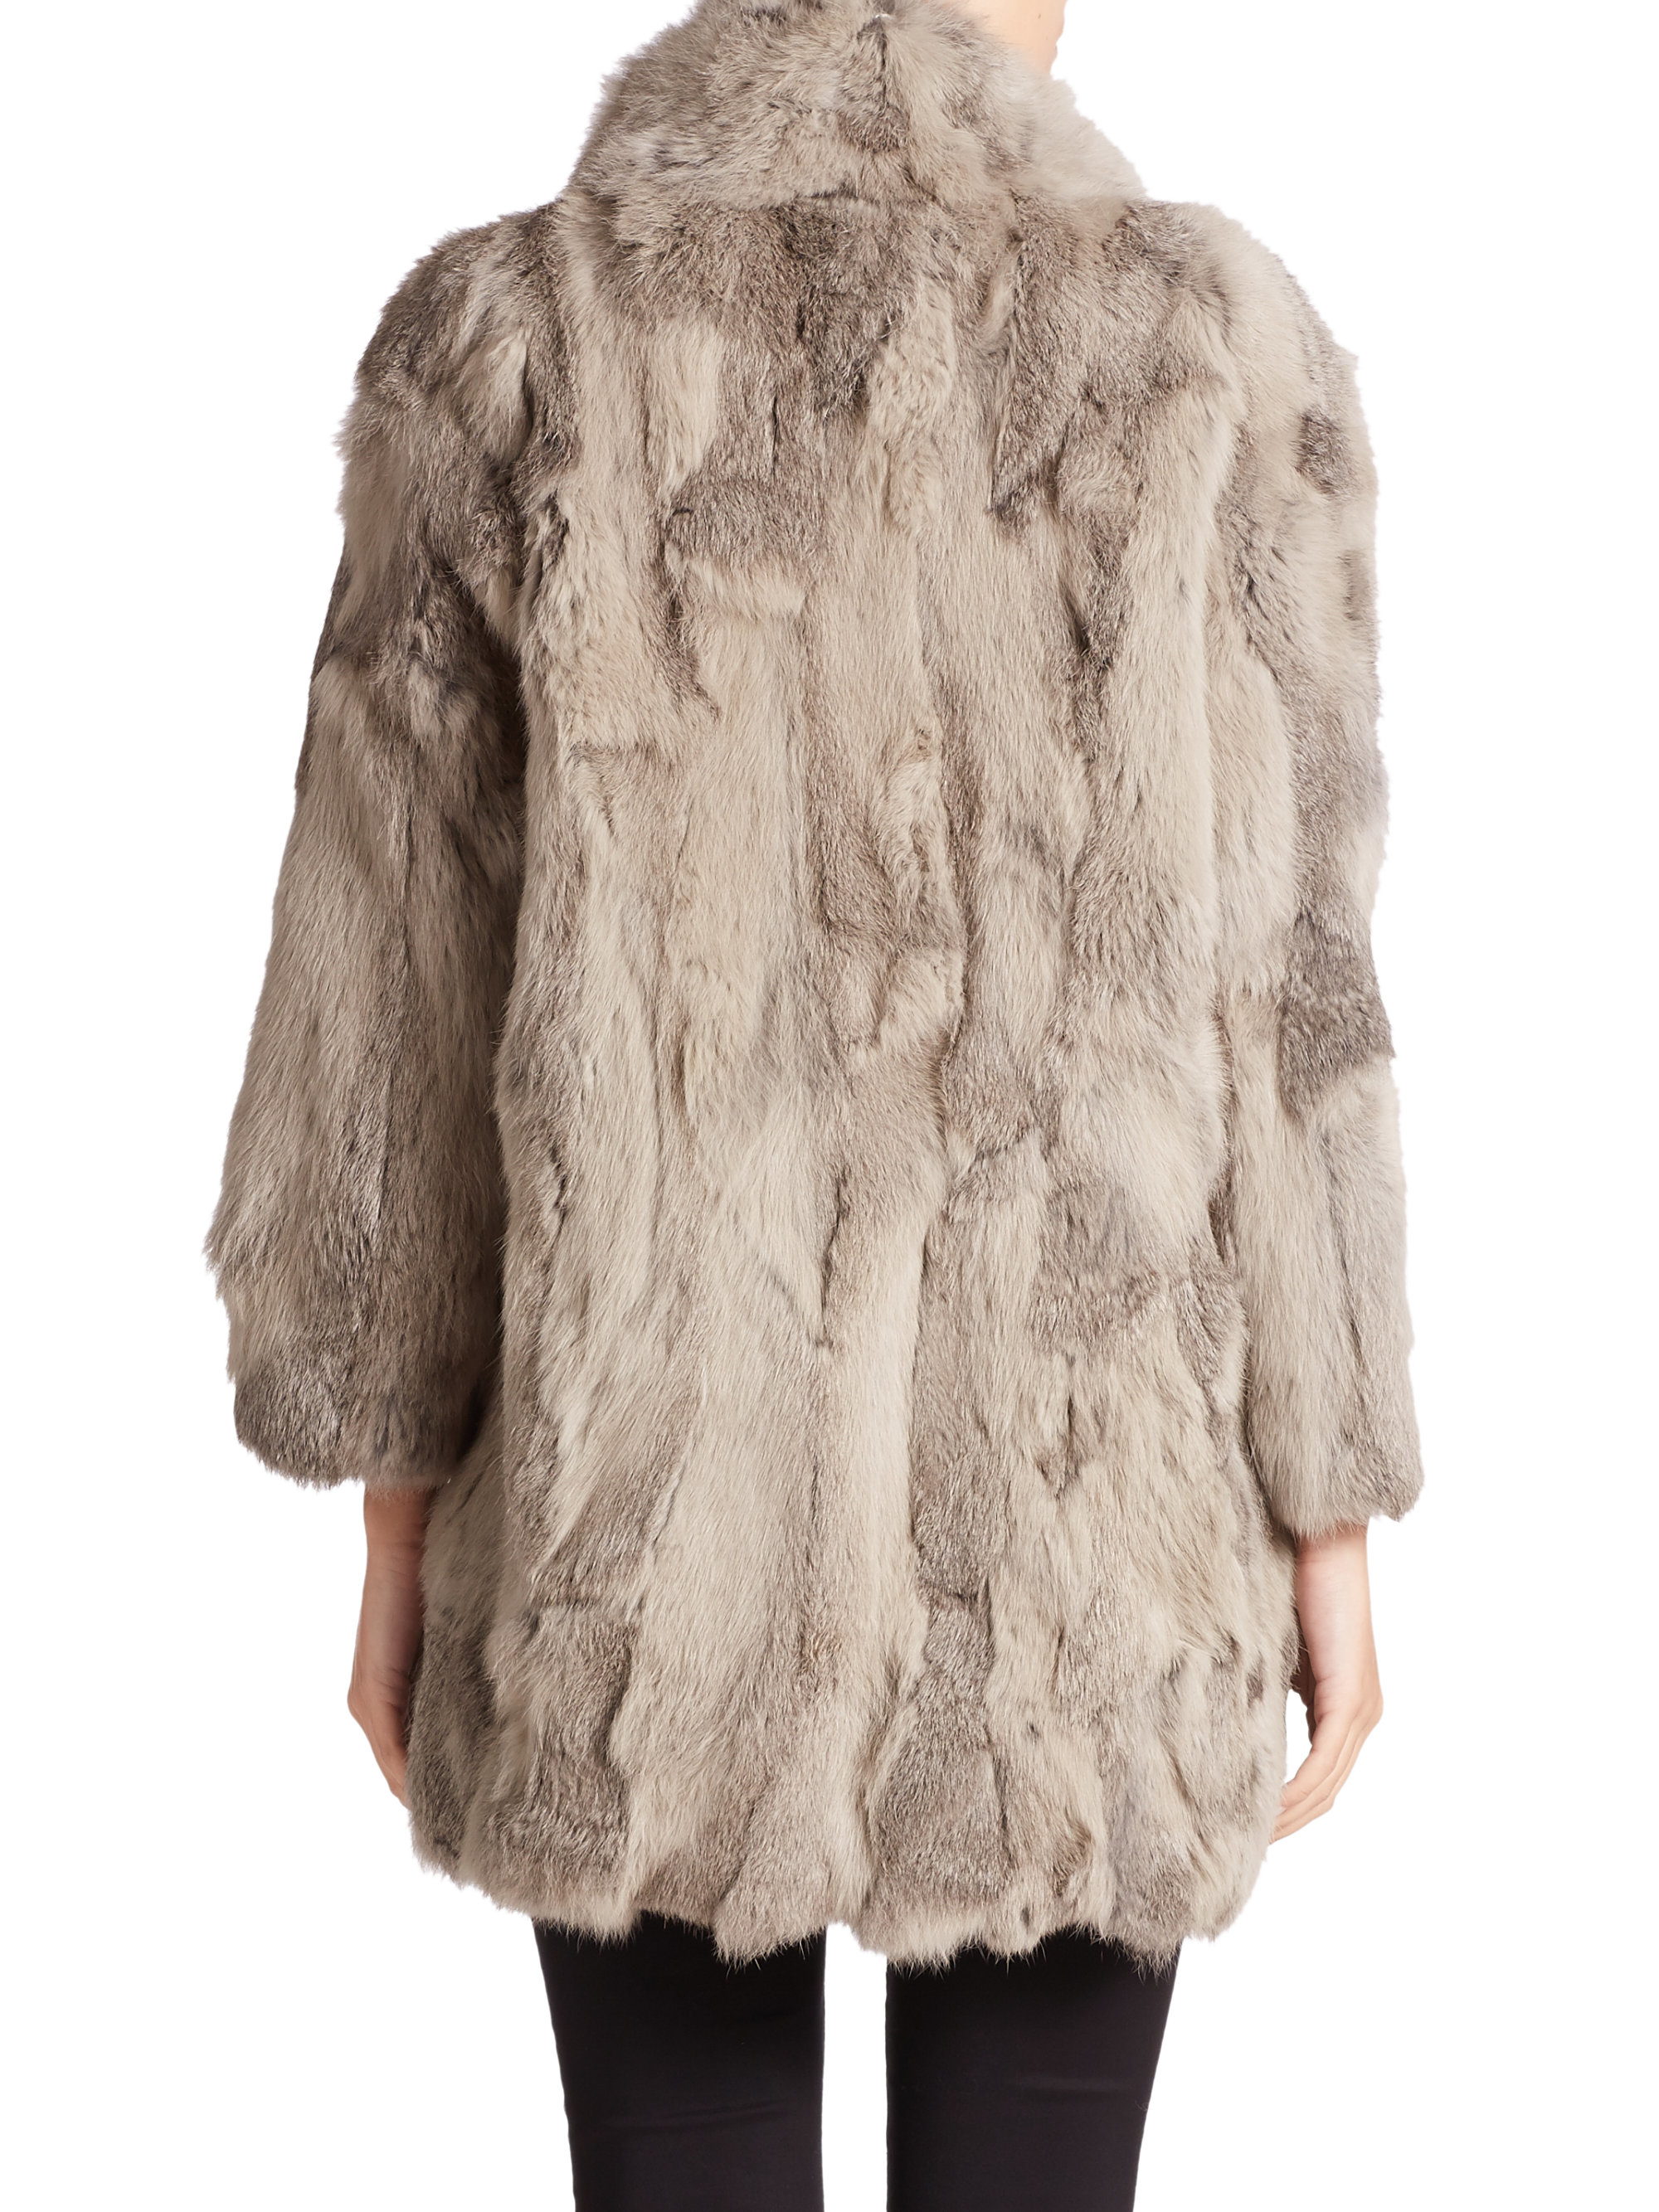 Adrienne Landau Textured Rabbit Fur Coat In Gray Lyst